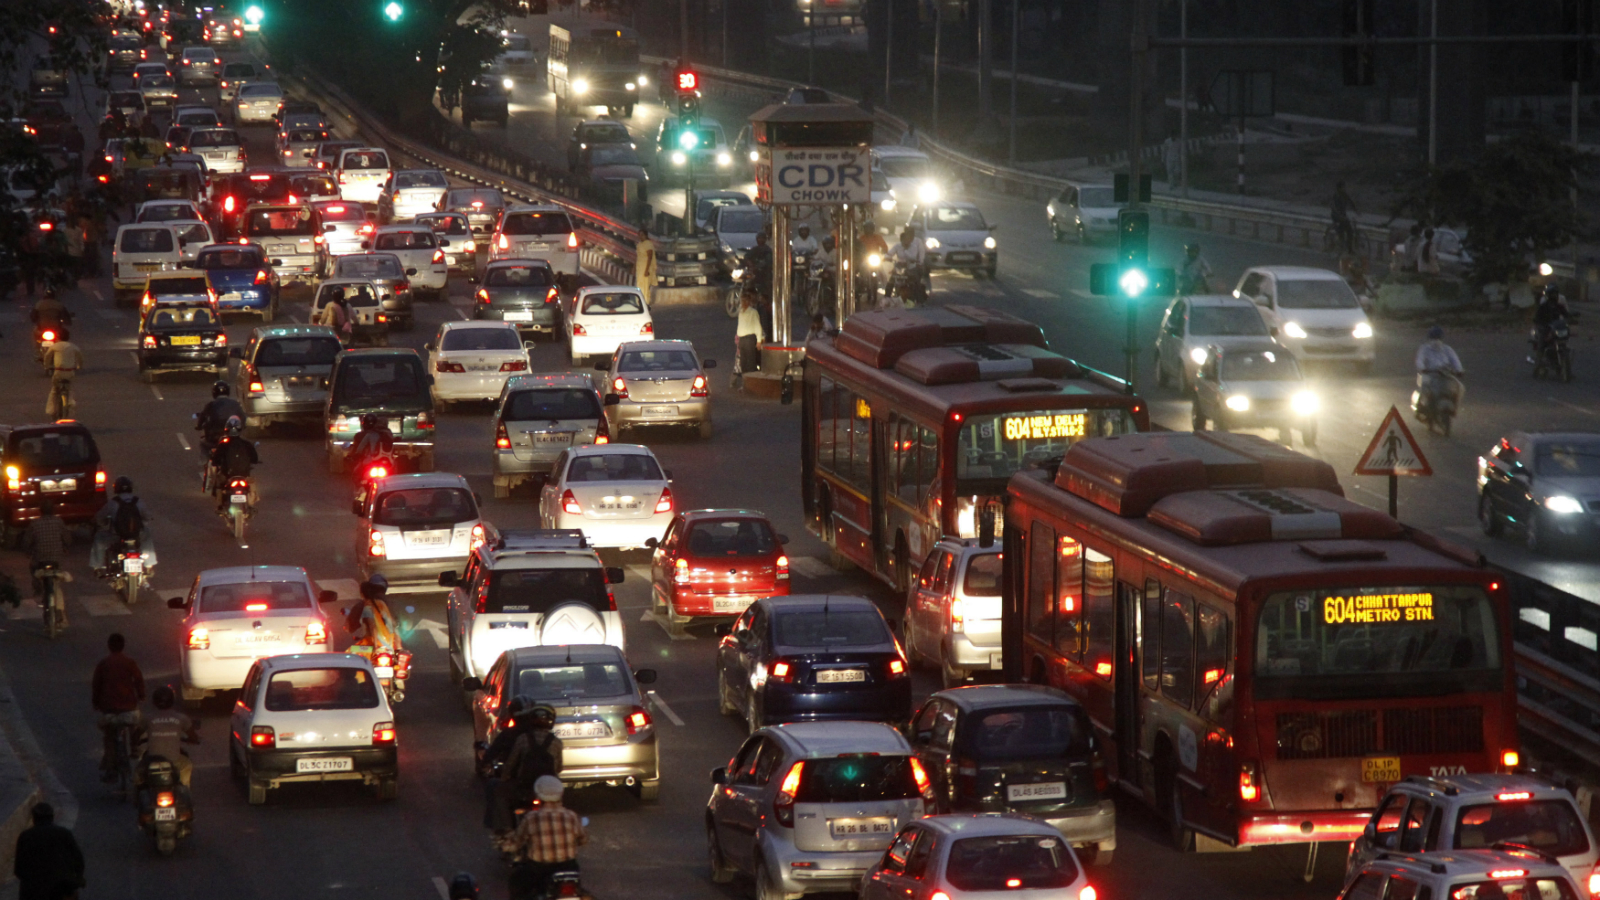 Traffic moves along a busy road in New Delhi November 9, 2011. Car sales in India fell 23.8 percent in October, the biggest percentage drop since December 2000, an industry body said on Wednesday, on higher interest rates and vehicle costs and labour unrest at the country's dominant carmaker, where sales fell by half. REUTERS/B Mathur (INDIA - Tags: TRANSPORT BUSINESS)